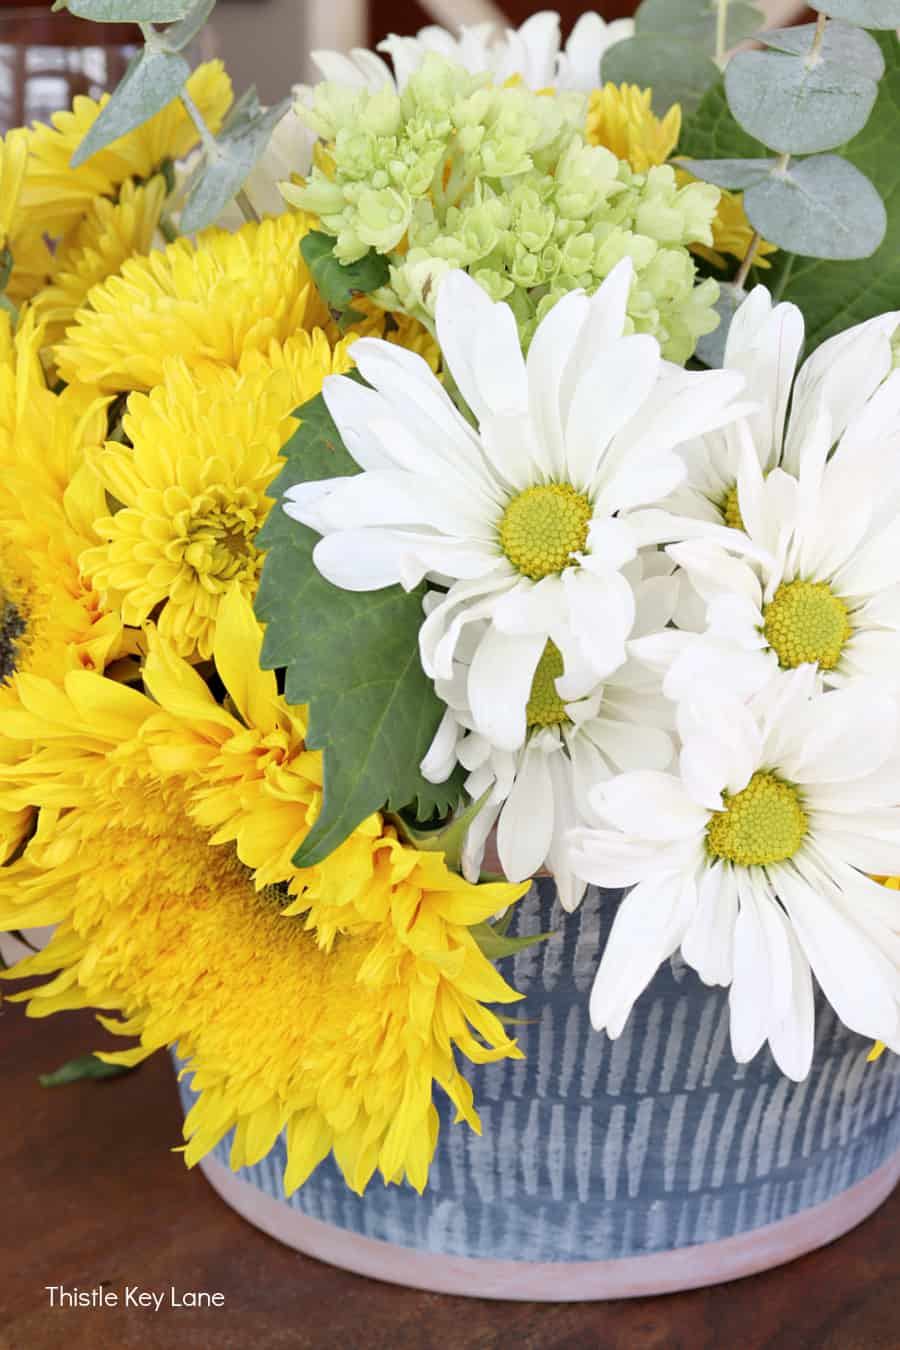 Sunflowers and mums in an arrangement. Early Fall Tablescape With Sunflowers.